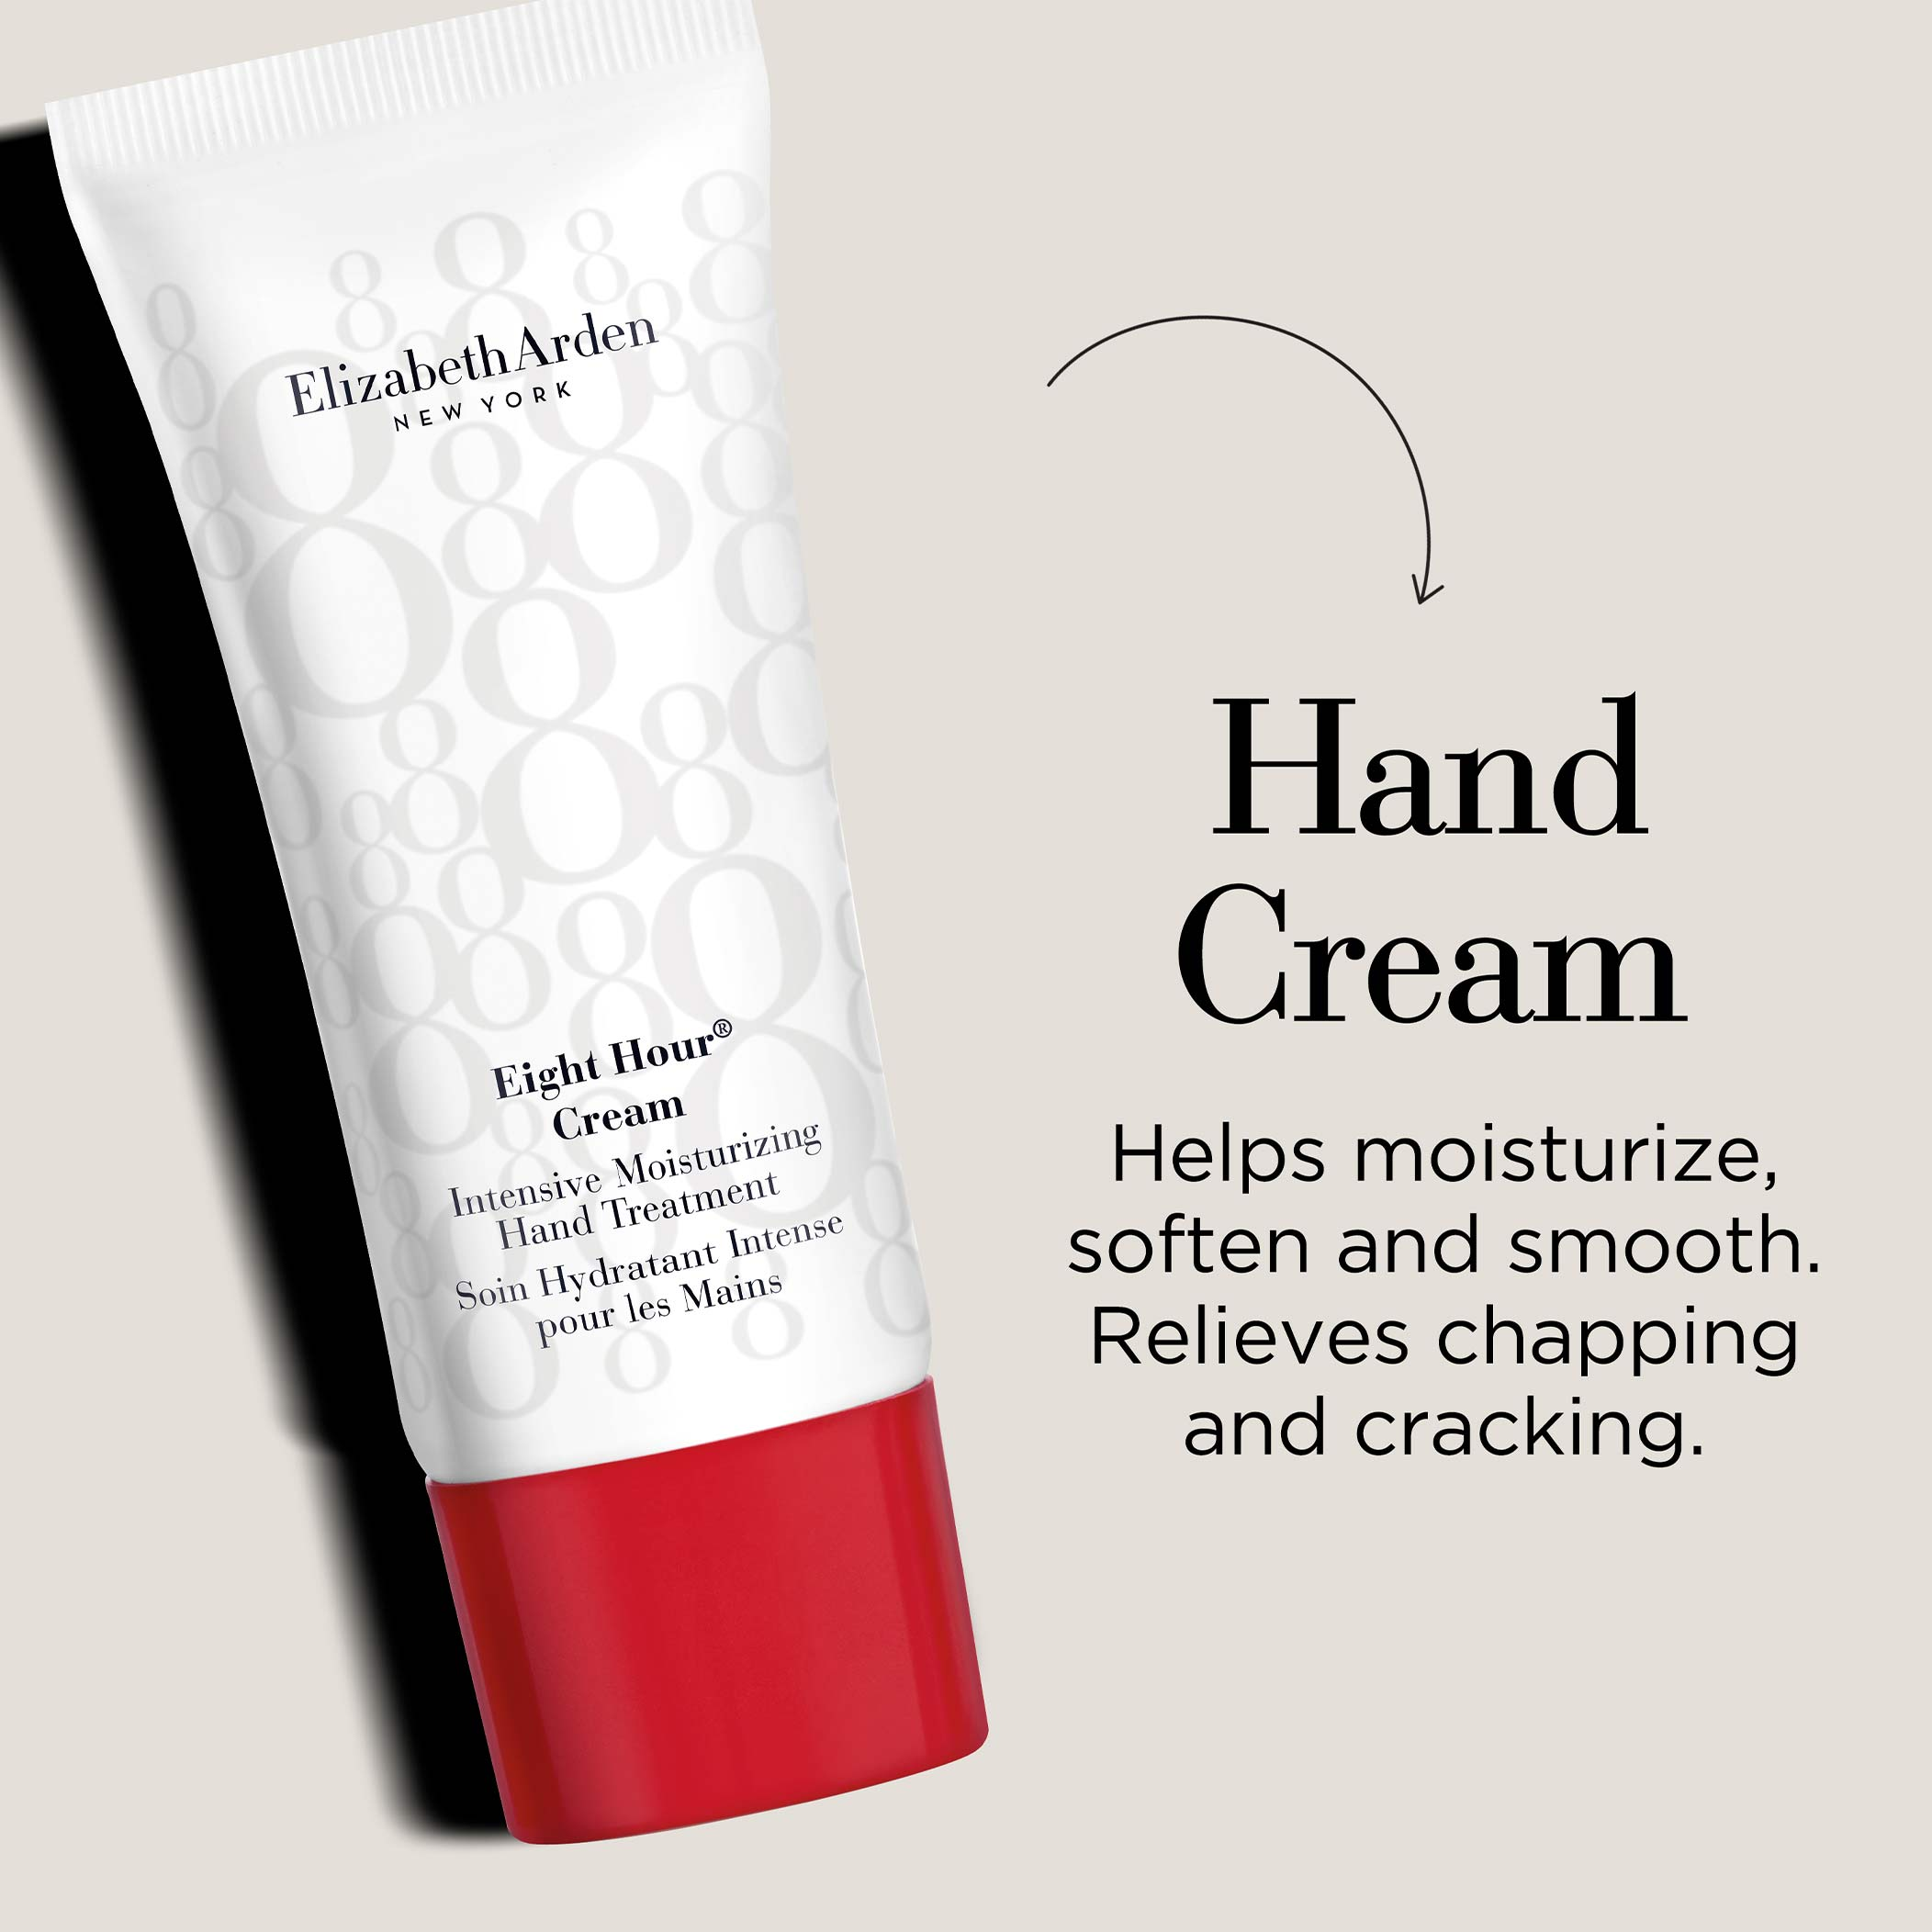 Hand Cream-Helps moisturize, soften and smooth. Relieves chapping and cracking.